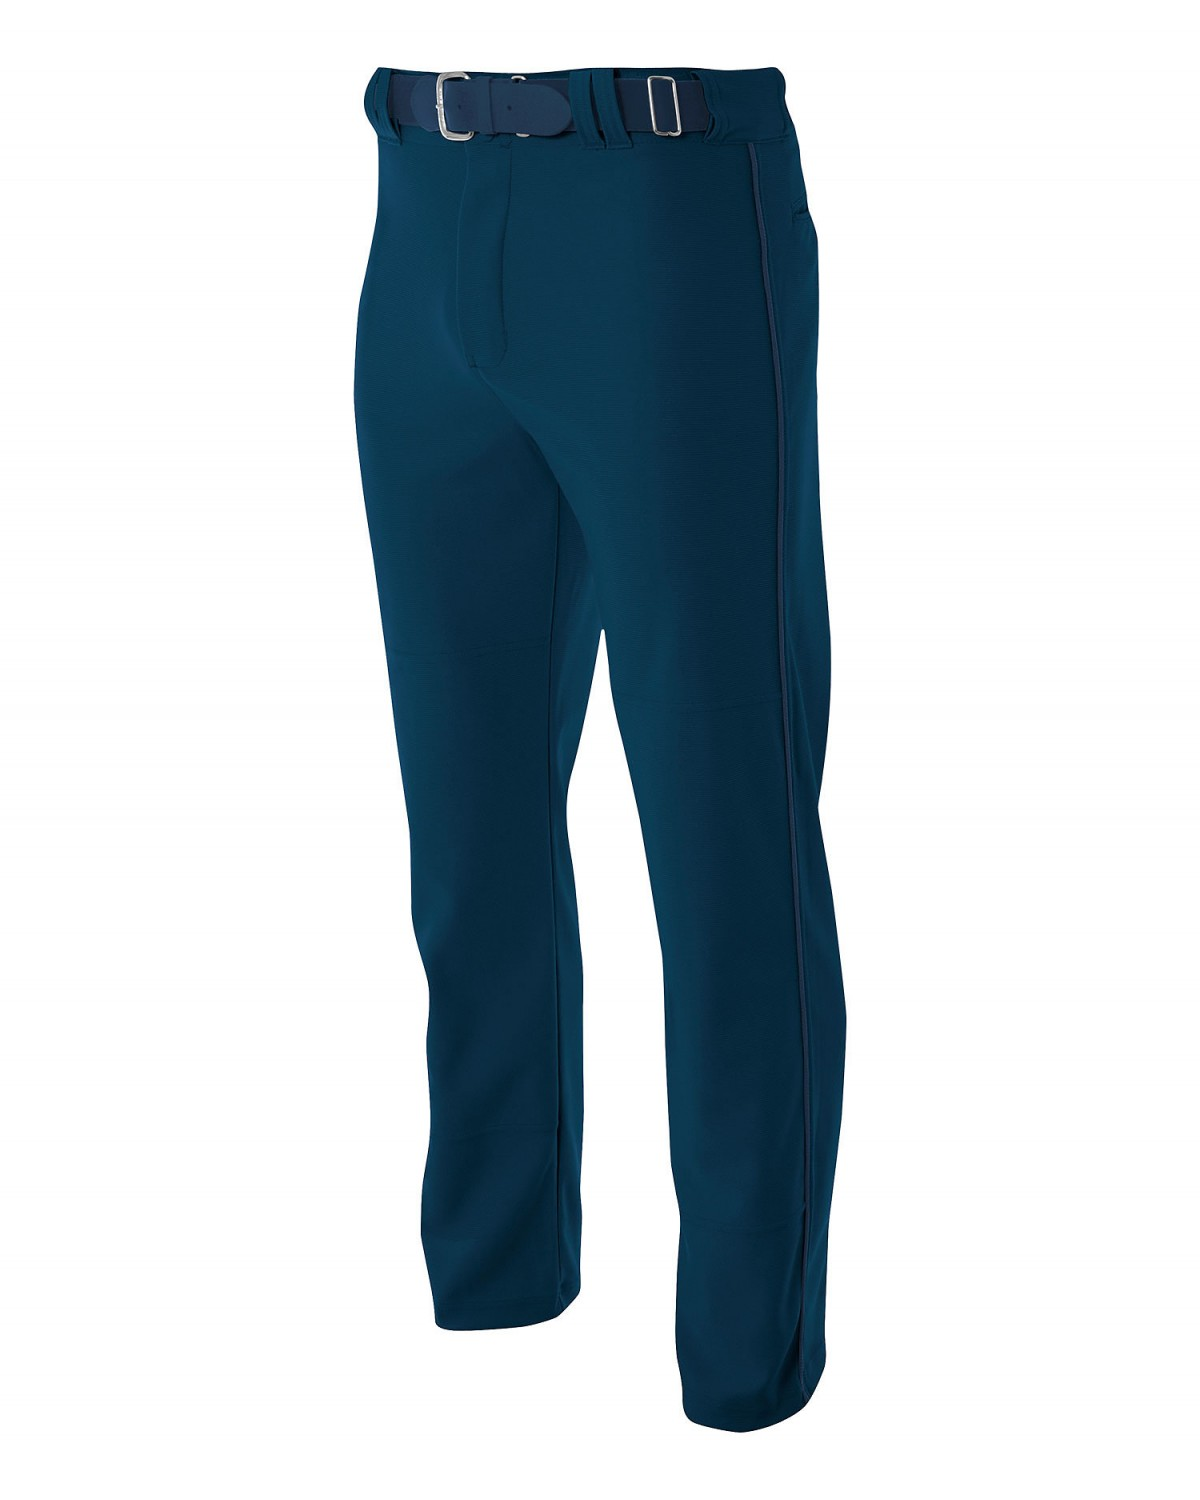 A6752 Anvil Heather Galapagos Blue